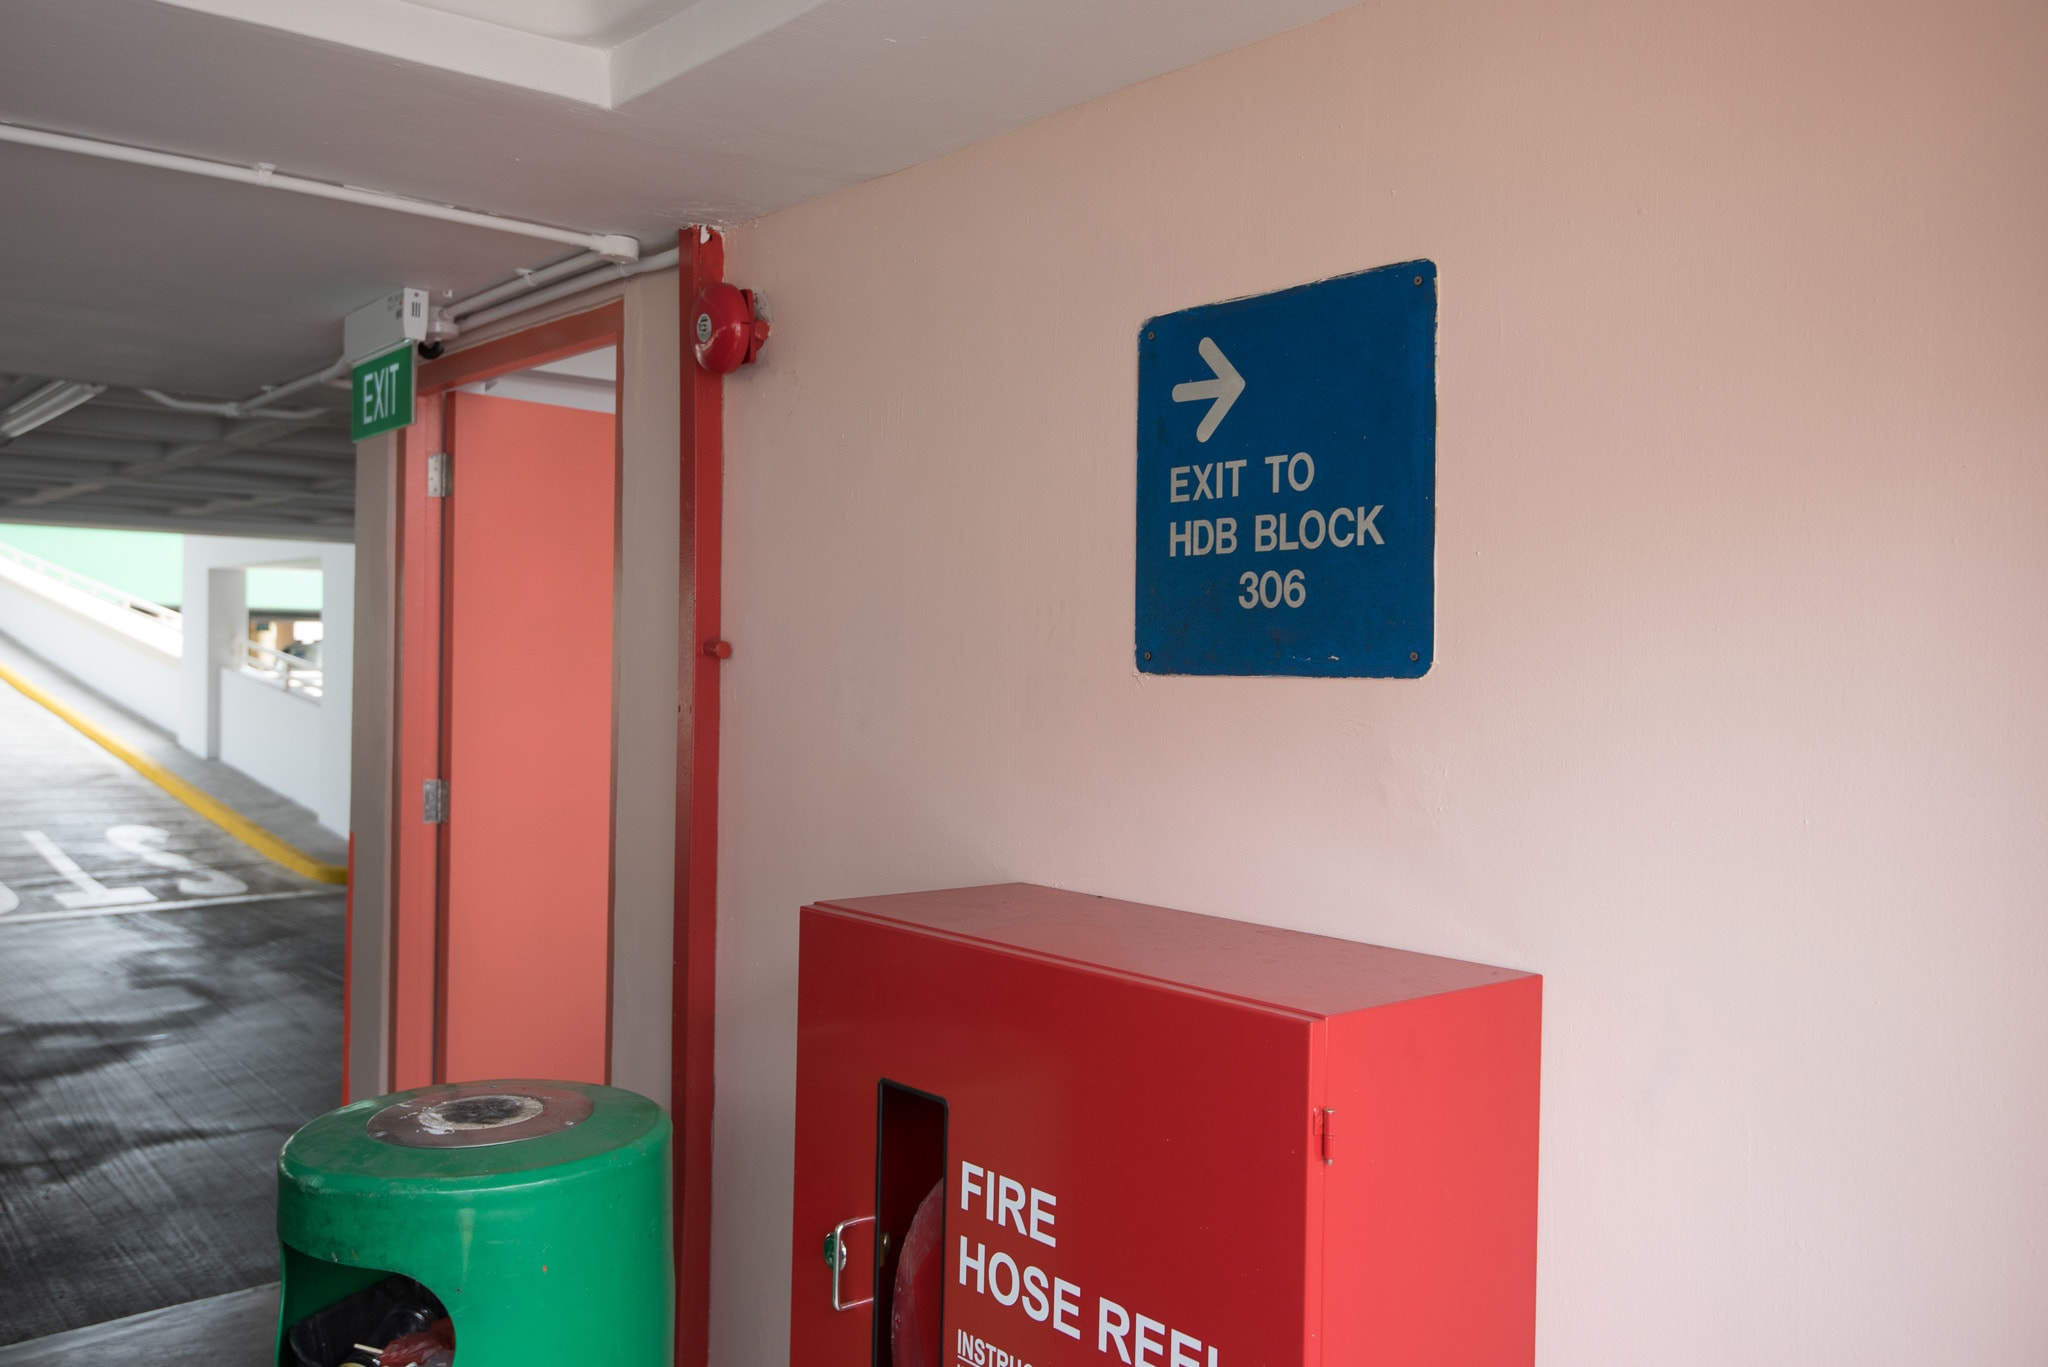 Instruction 16 (Exit to HDB BLOCK 306 OF THE MSCP)